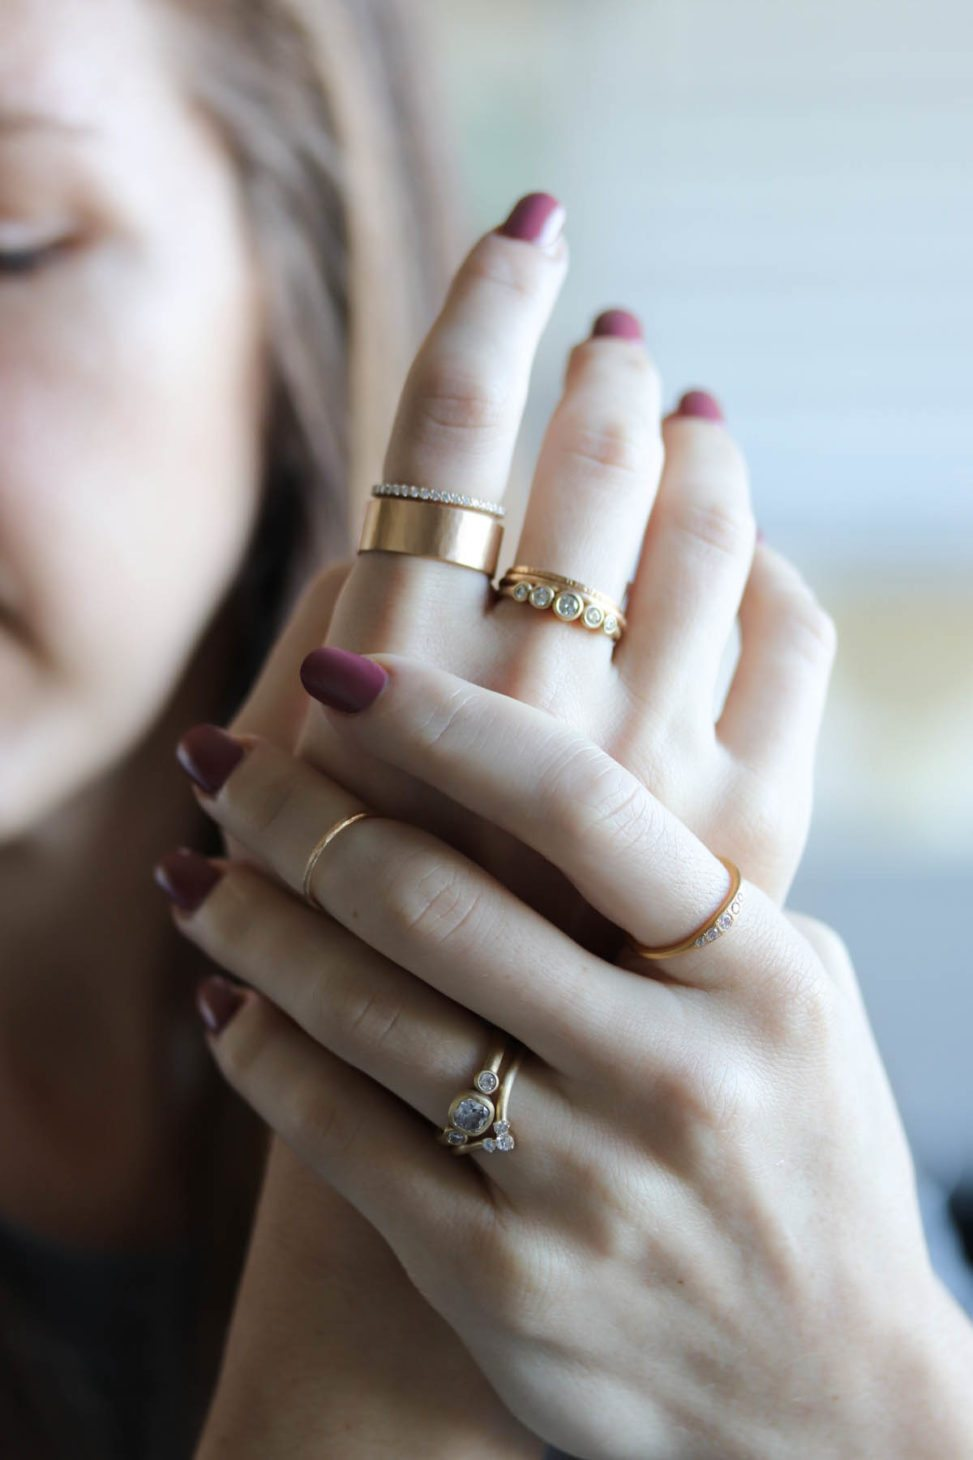 Woman holde her hands, wearing many rings